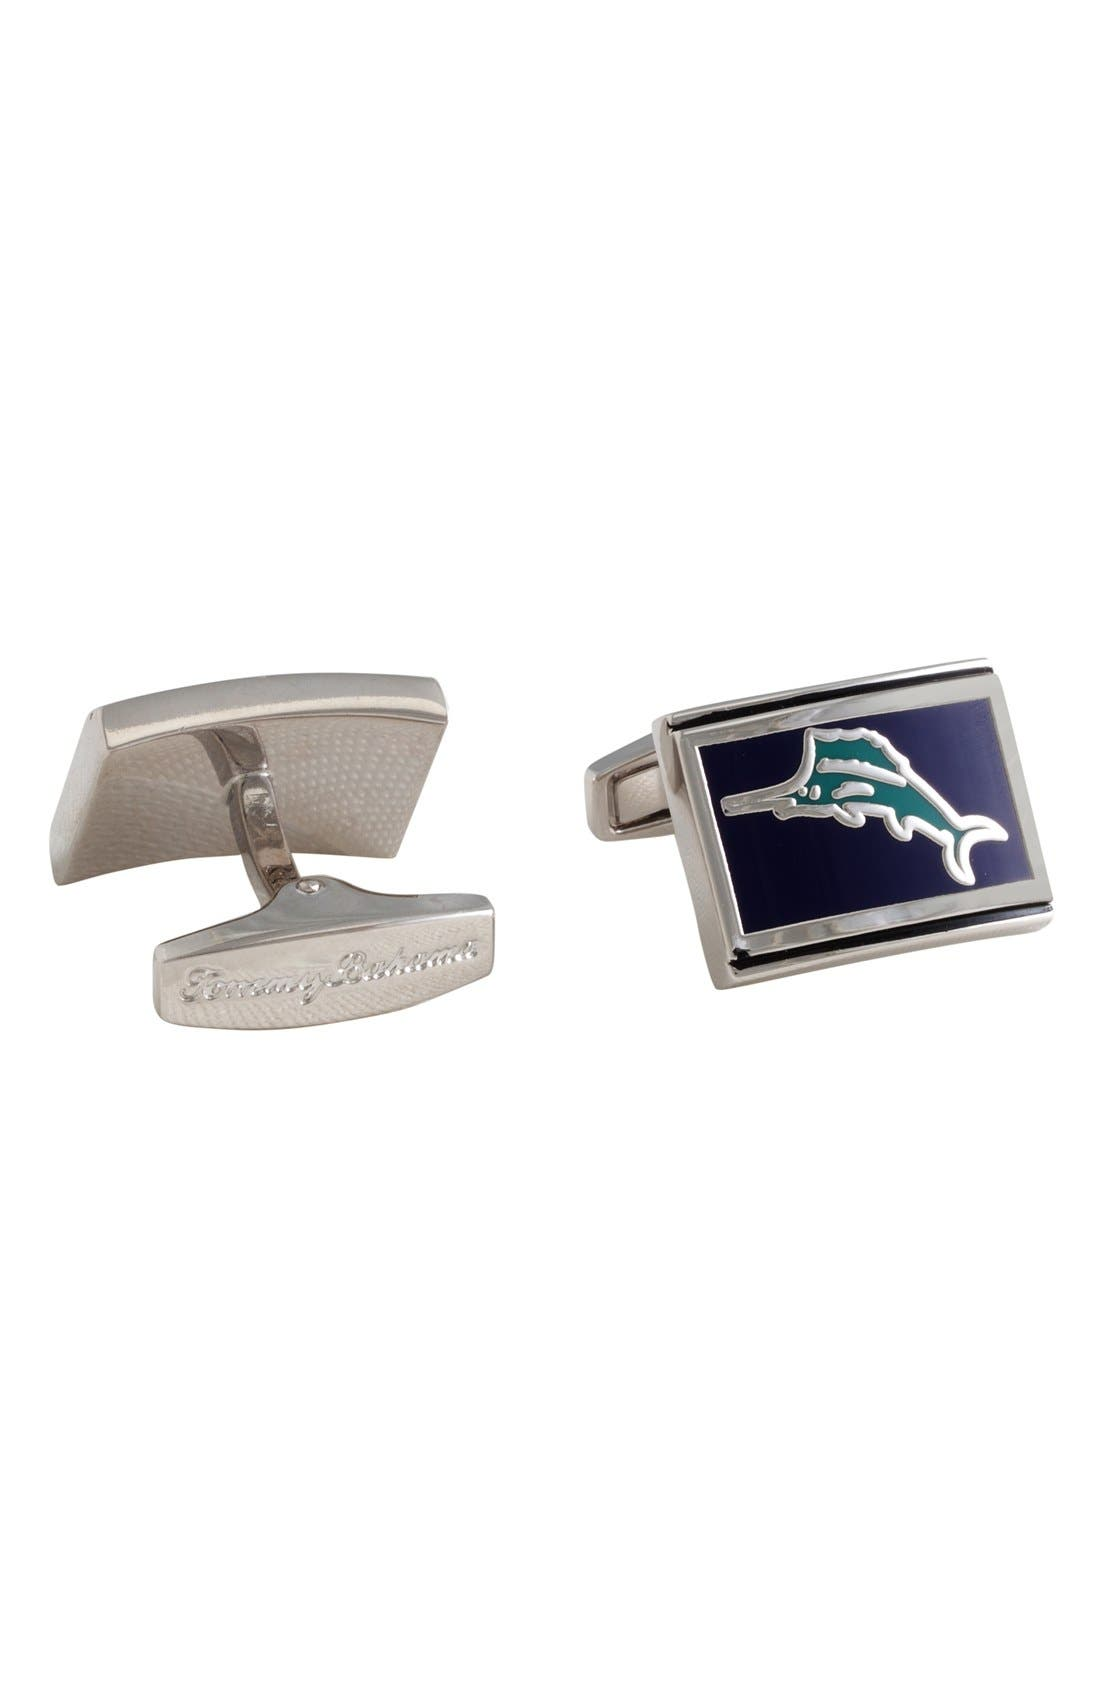 Marlin Cuff Links,                         Main,                         color, 318